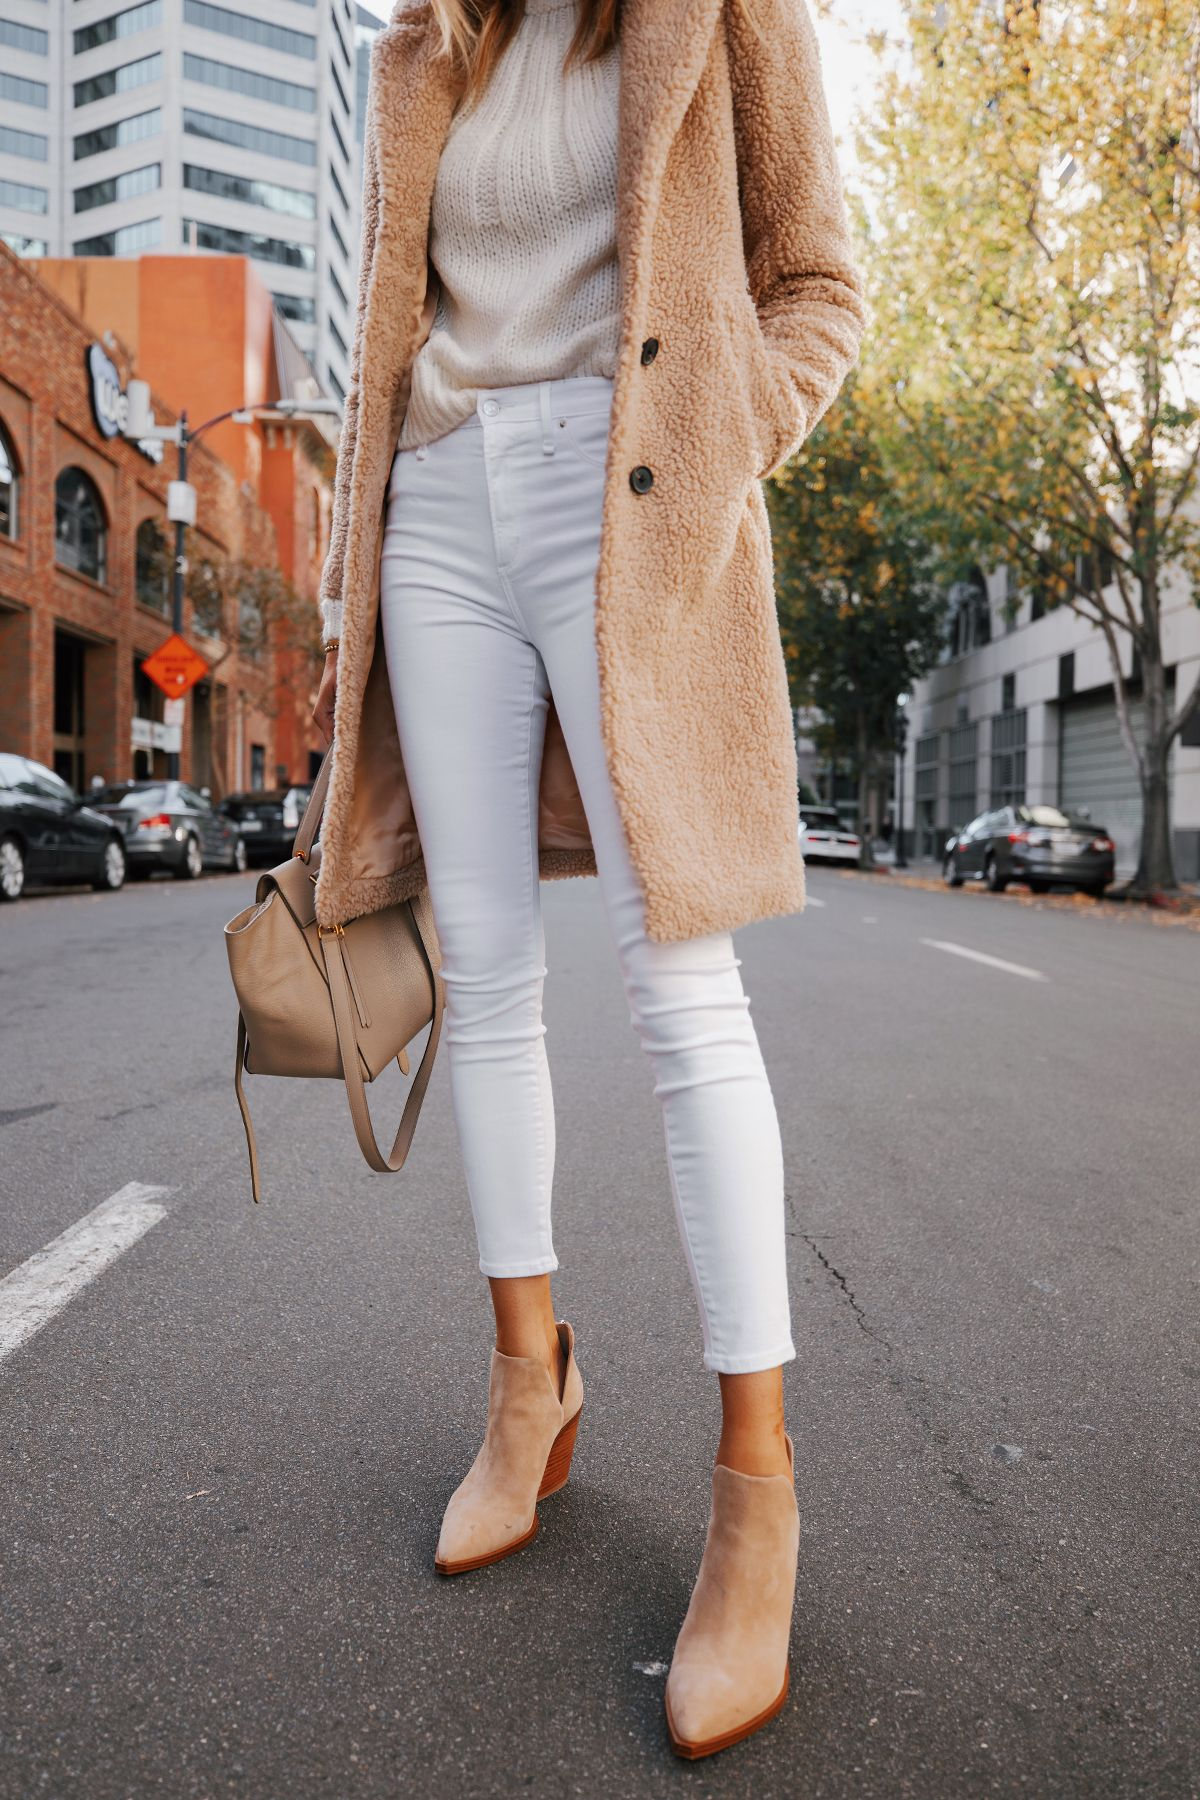 How to Wear White Skinny Jeans in Winter | Fashion Jackson